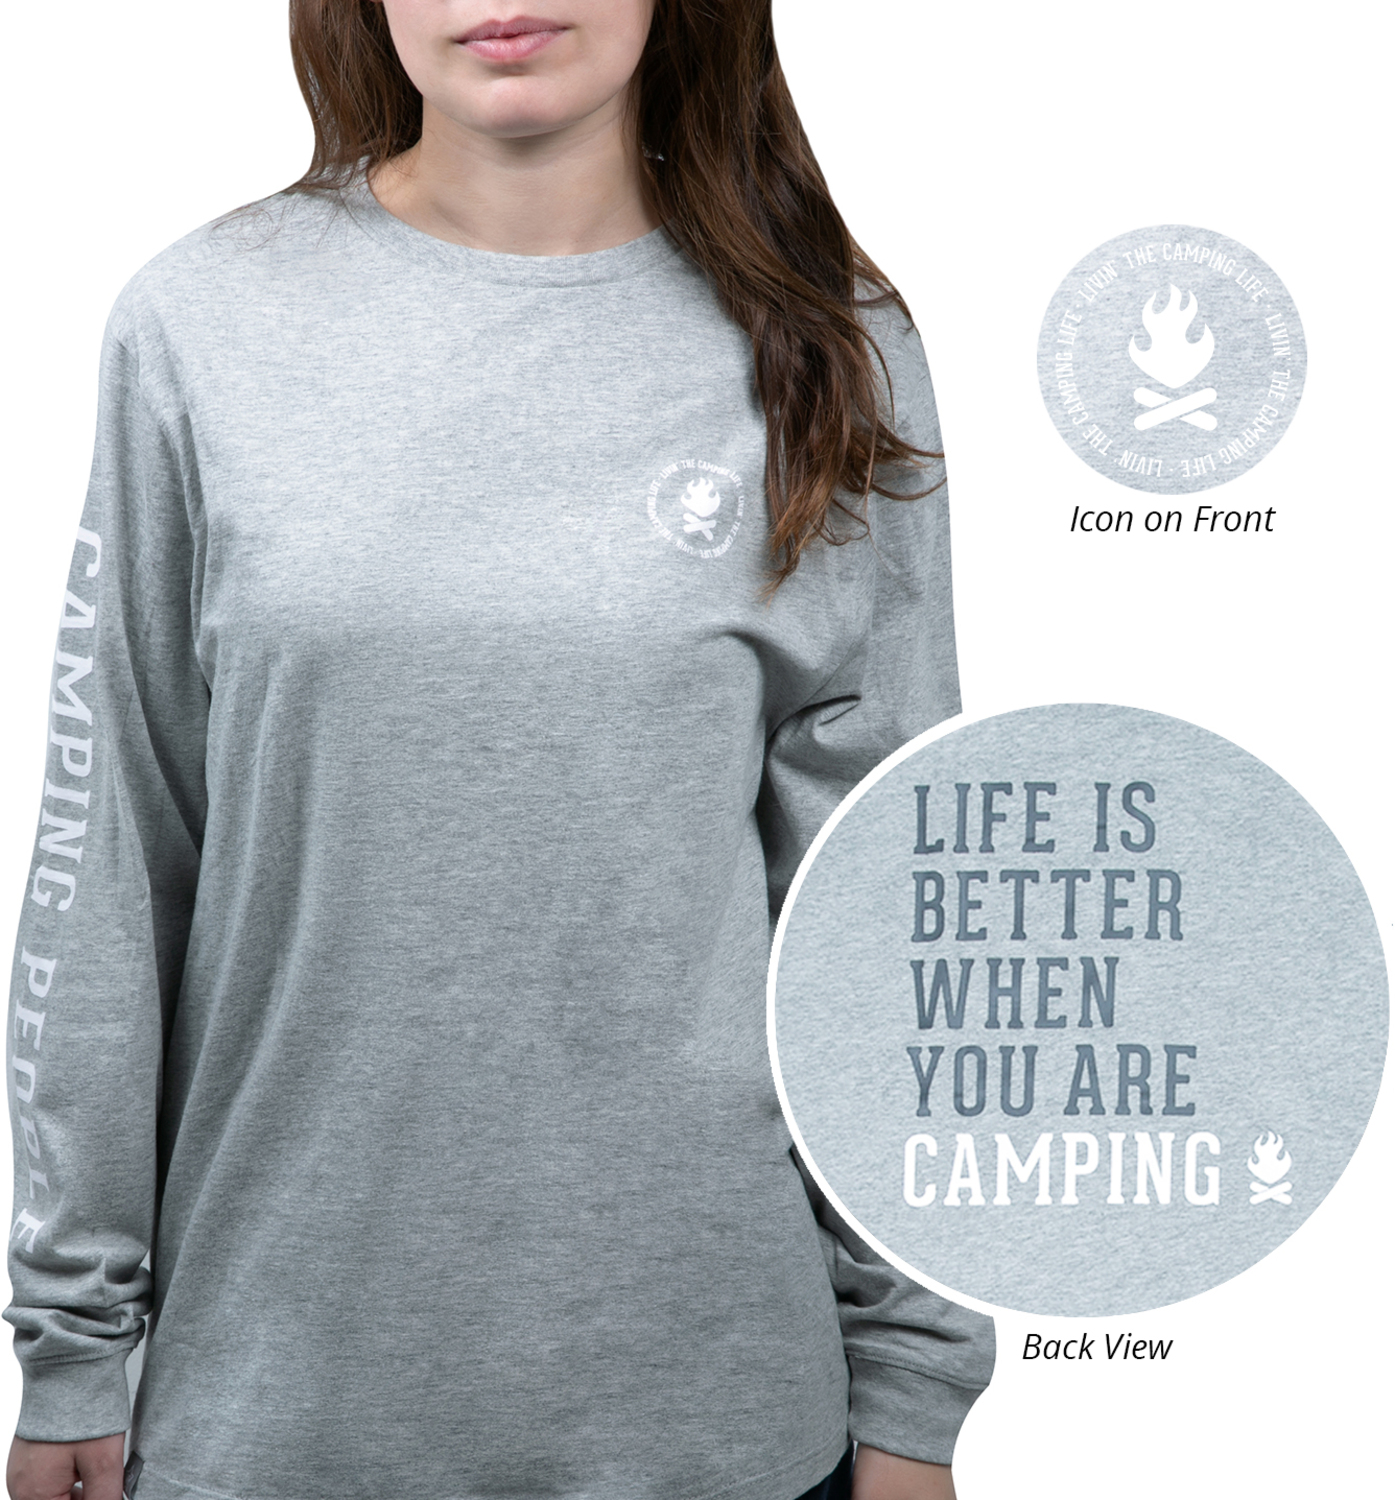 Camping People by We People - Camping People - Small Heather Gray Unisex Long Sleeve T-Shirt